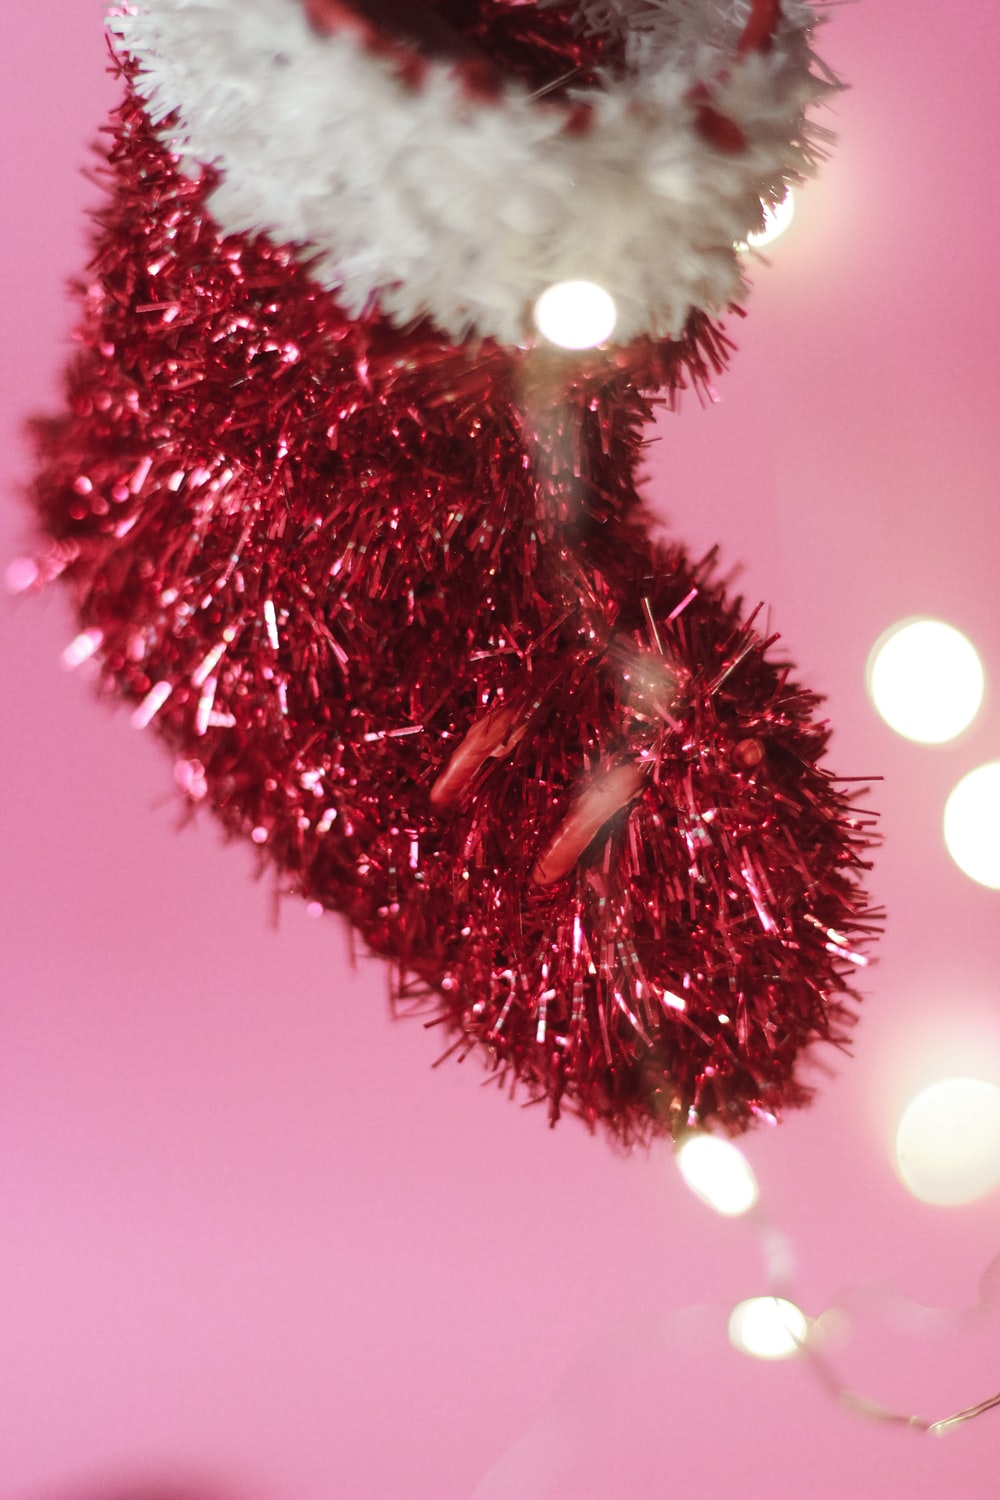 red and white fur ball ornament